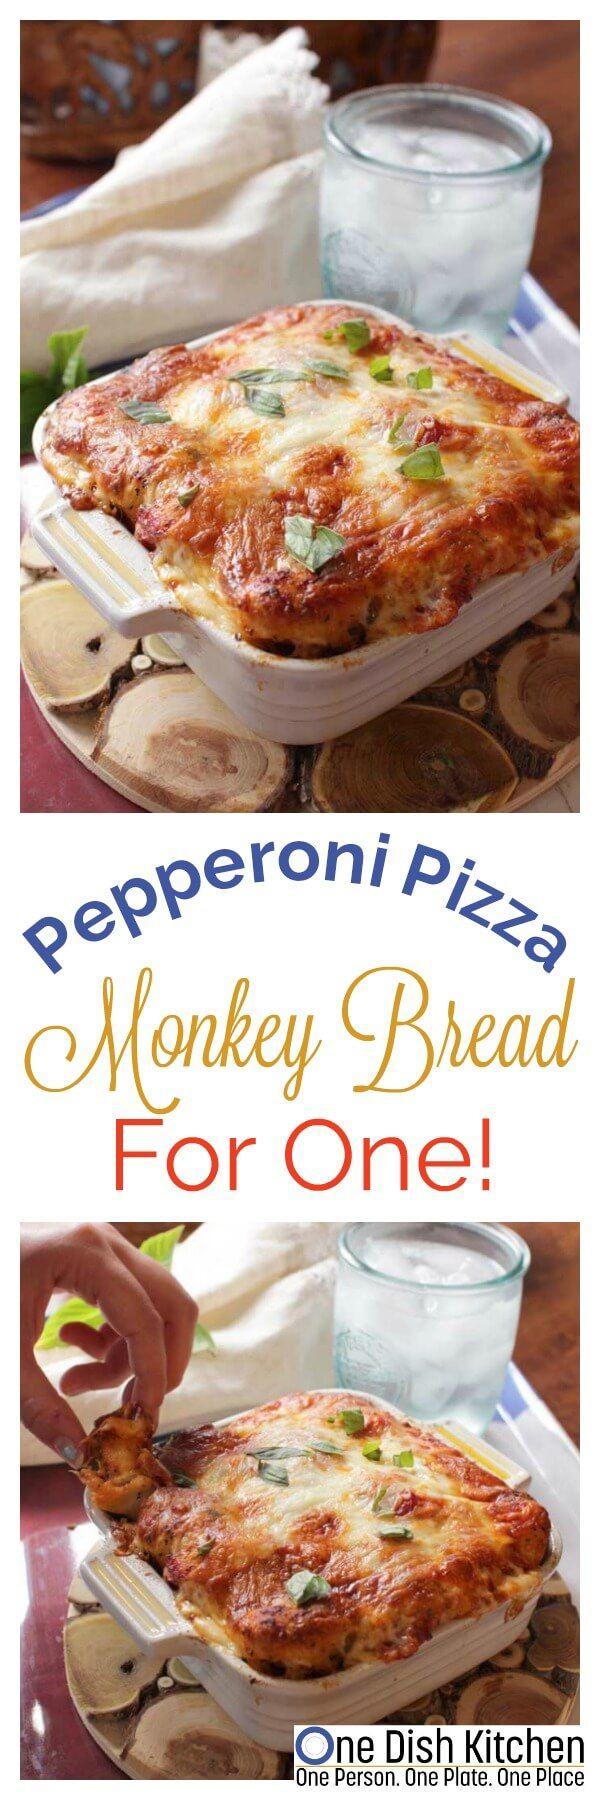 Pepperoni Pizza Monkey Bread For One! Pull apart bread baked in a small baking dish. Made with biscuit dough, cheese and pepperoni. A quick and easy recipe for one! | onedishkitchen.com | ONE DISH KITCHEN